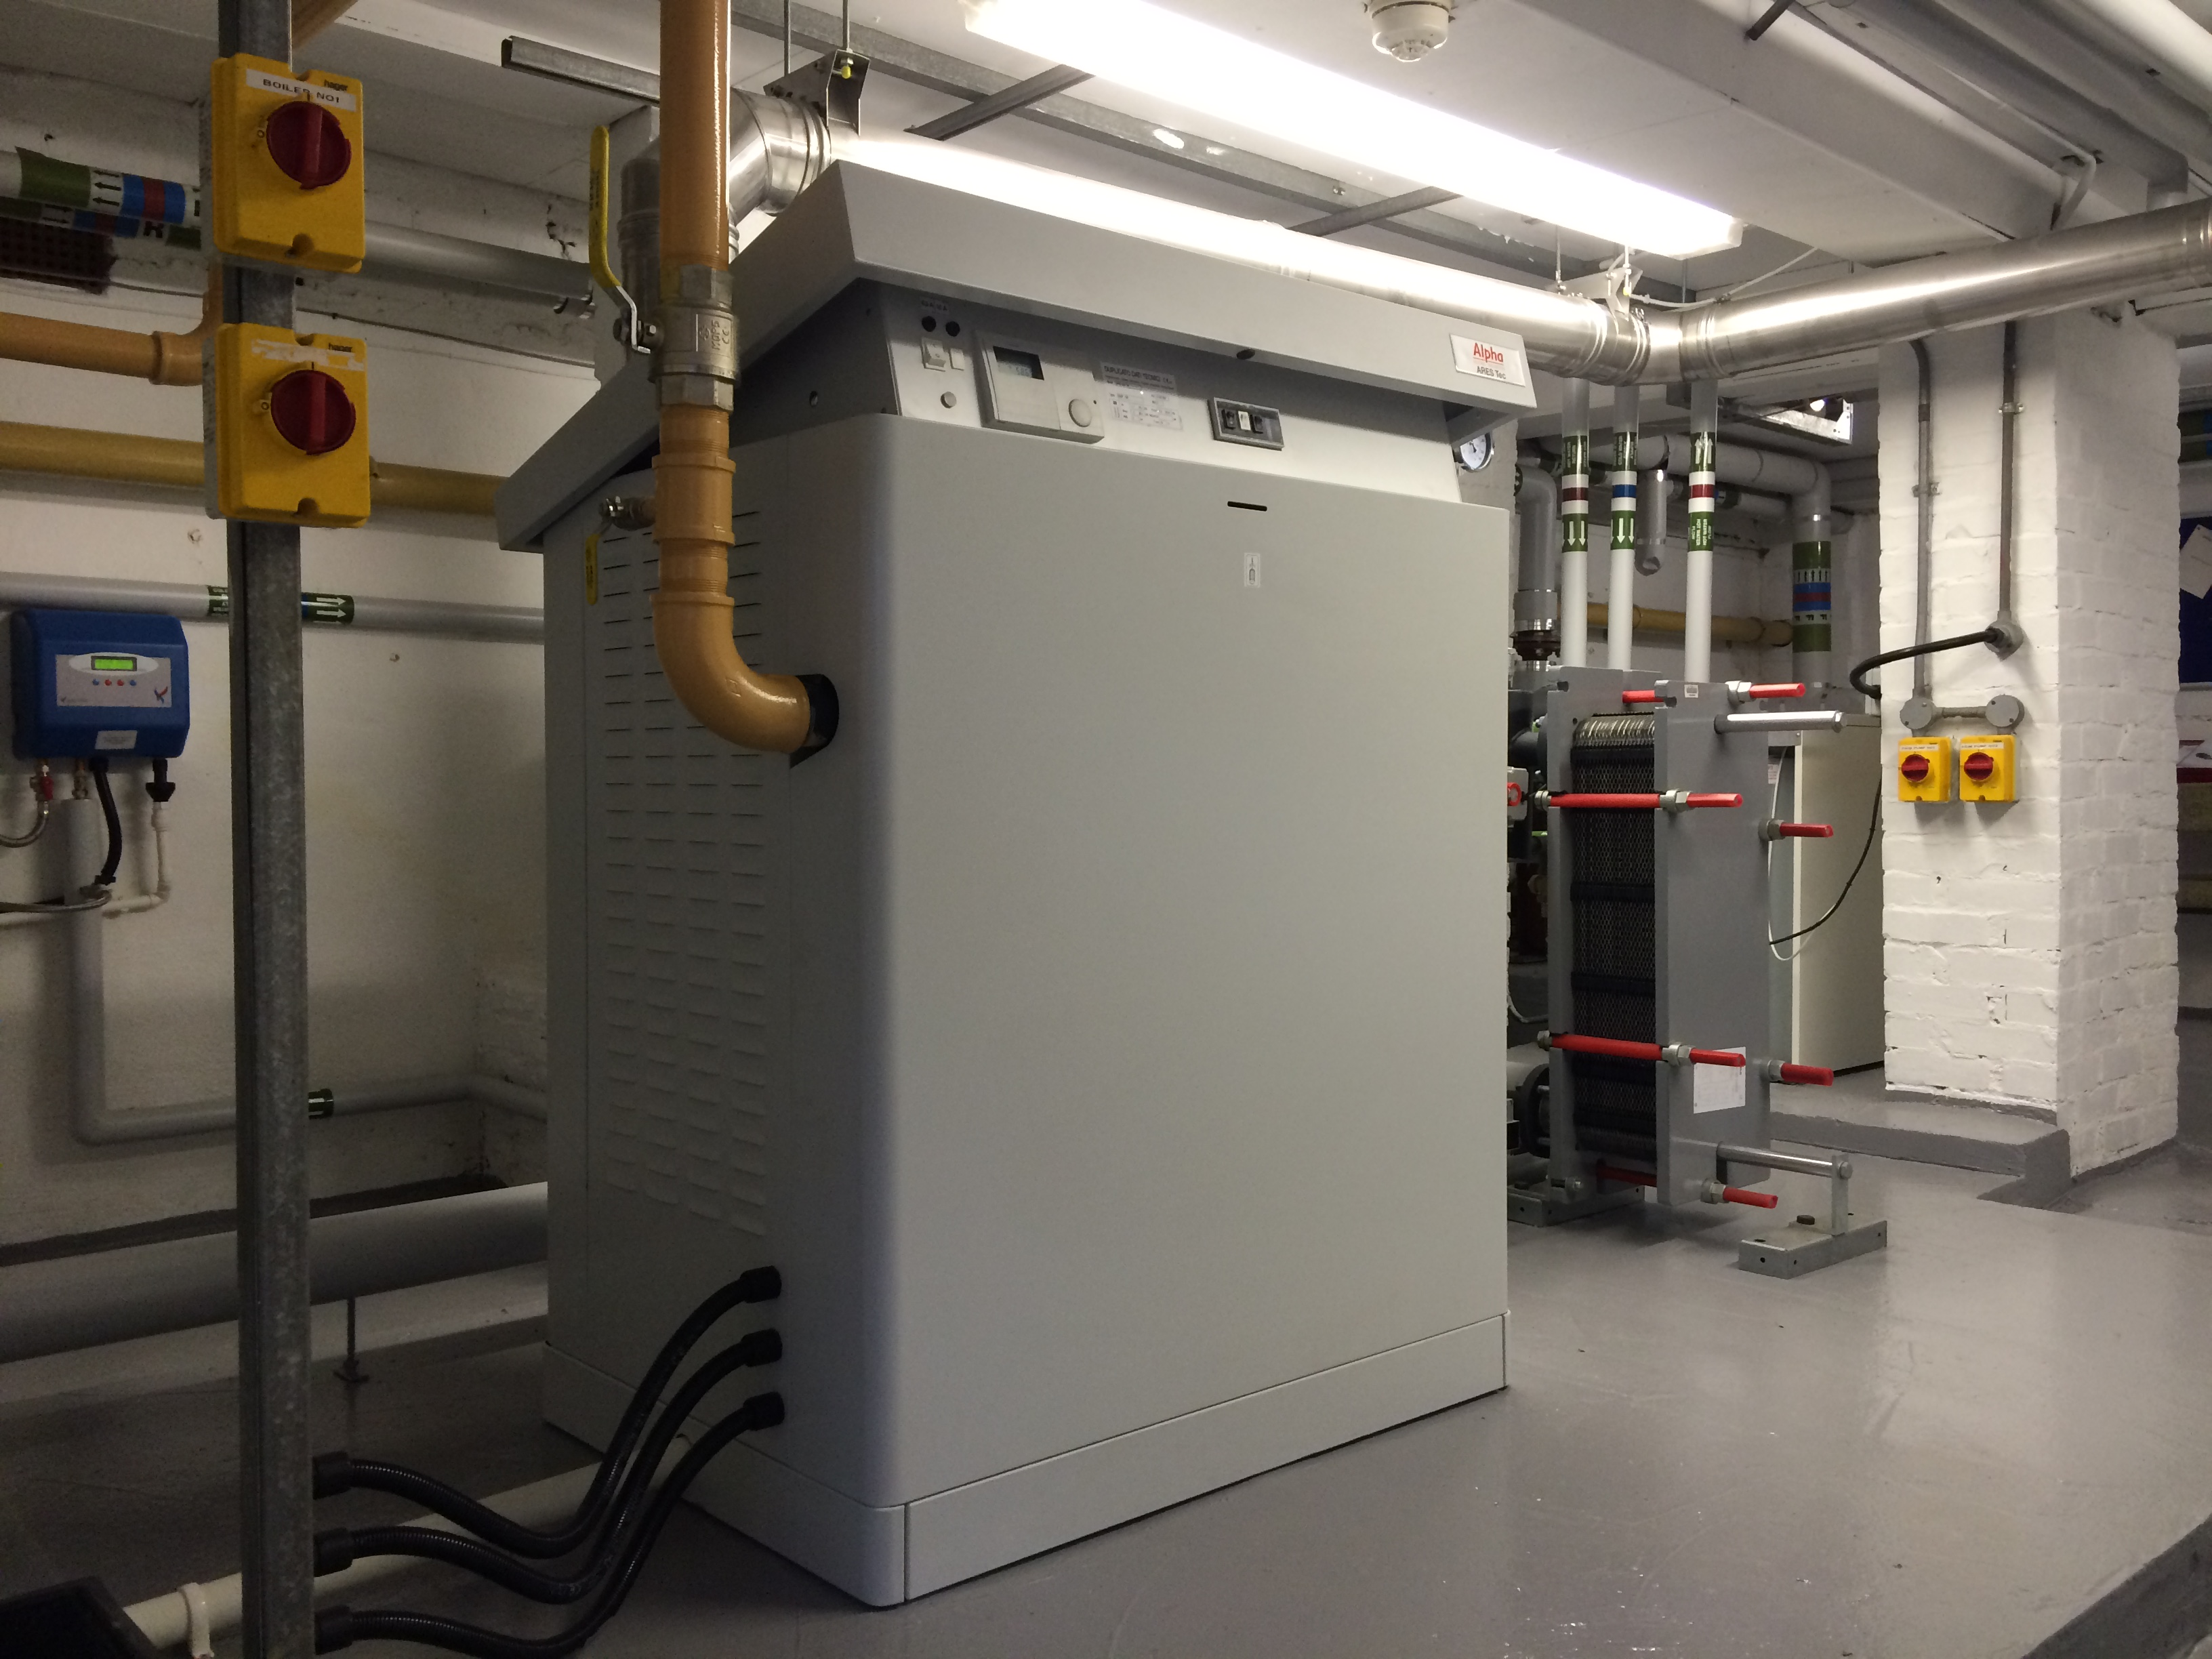 What better replacement for a heating system than the ARES Tec system?